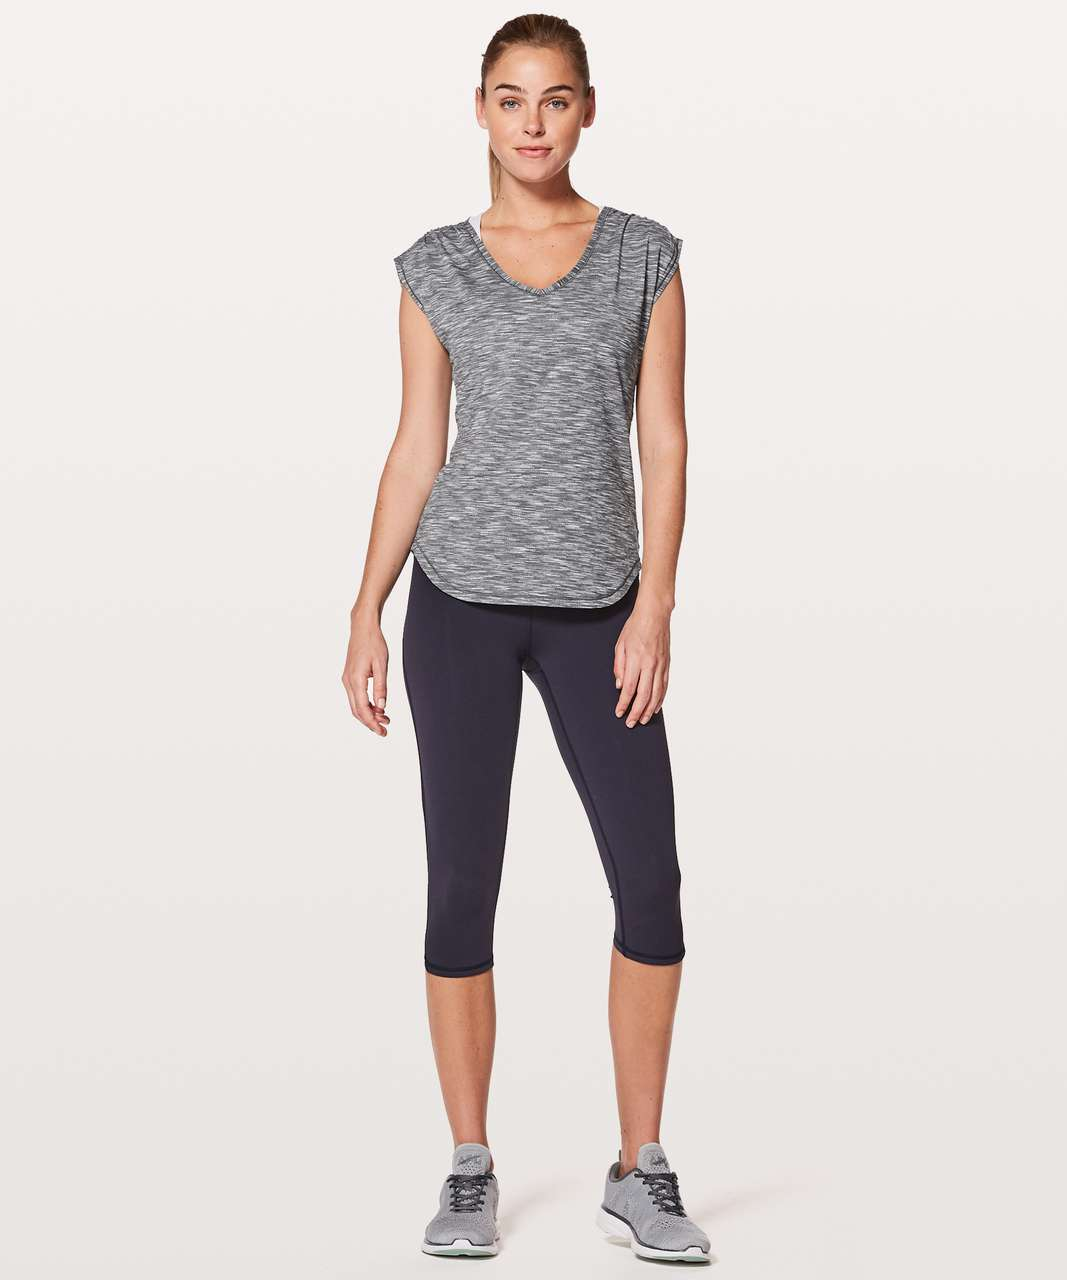 Lululemon Sweat Times Short Sleeve - Tiger Space Dye Alpine White Dark Slate